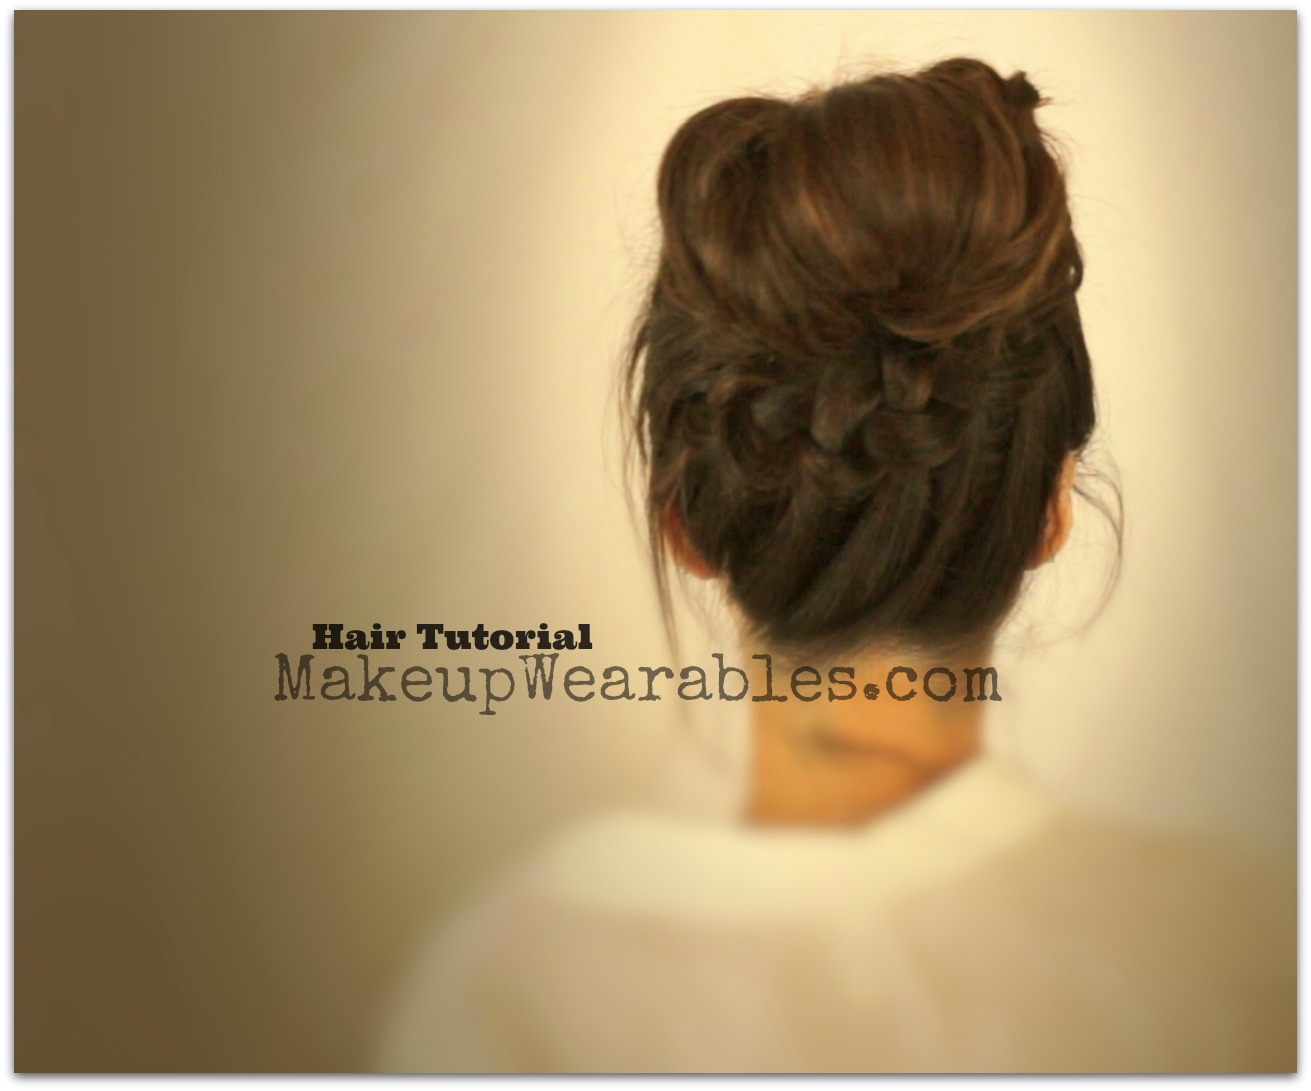 Wondrous Learn 3 Cute Everyday Casual Hairstyles Updos Hair Tutorial Videos Hairstyles For Men Maxibearus